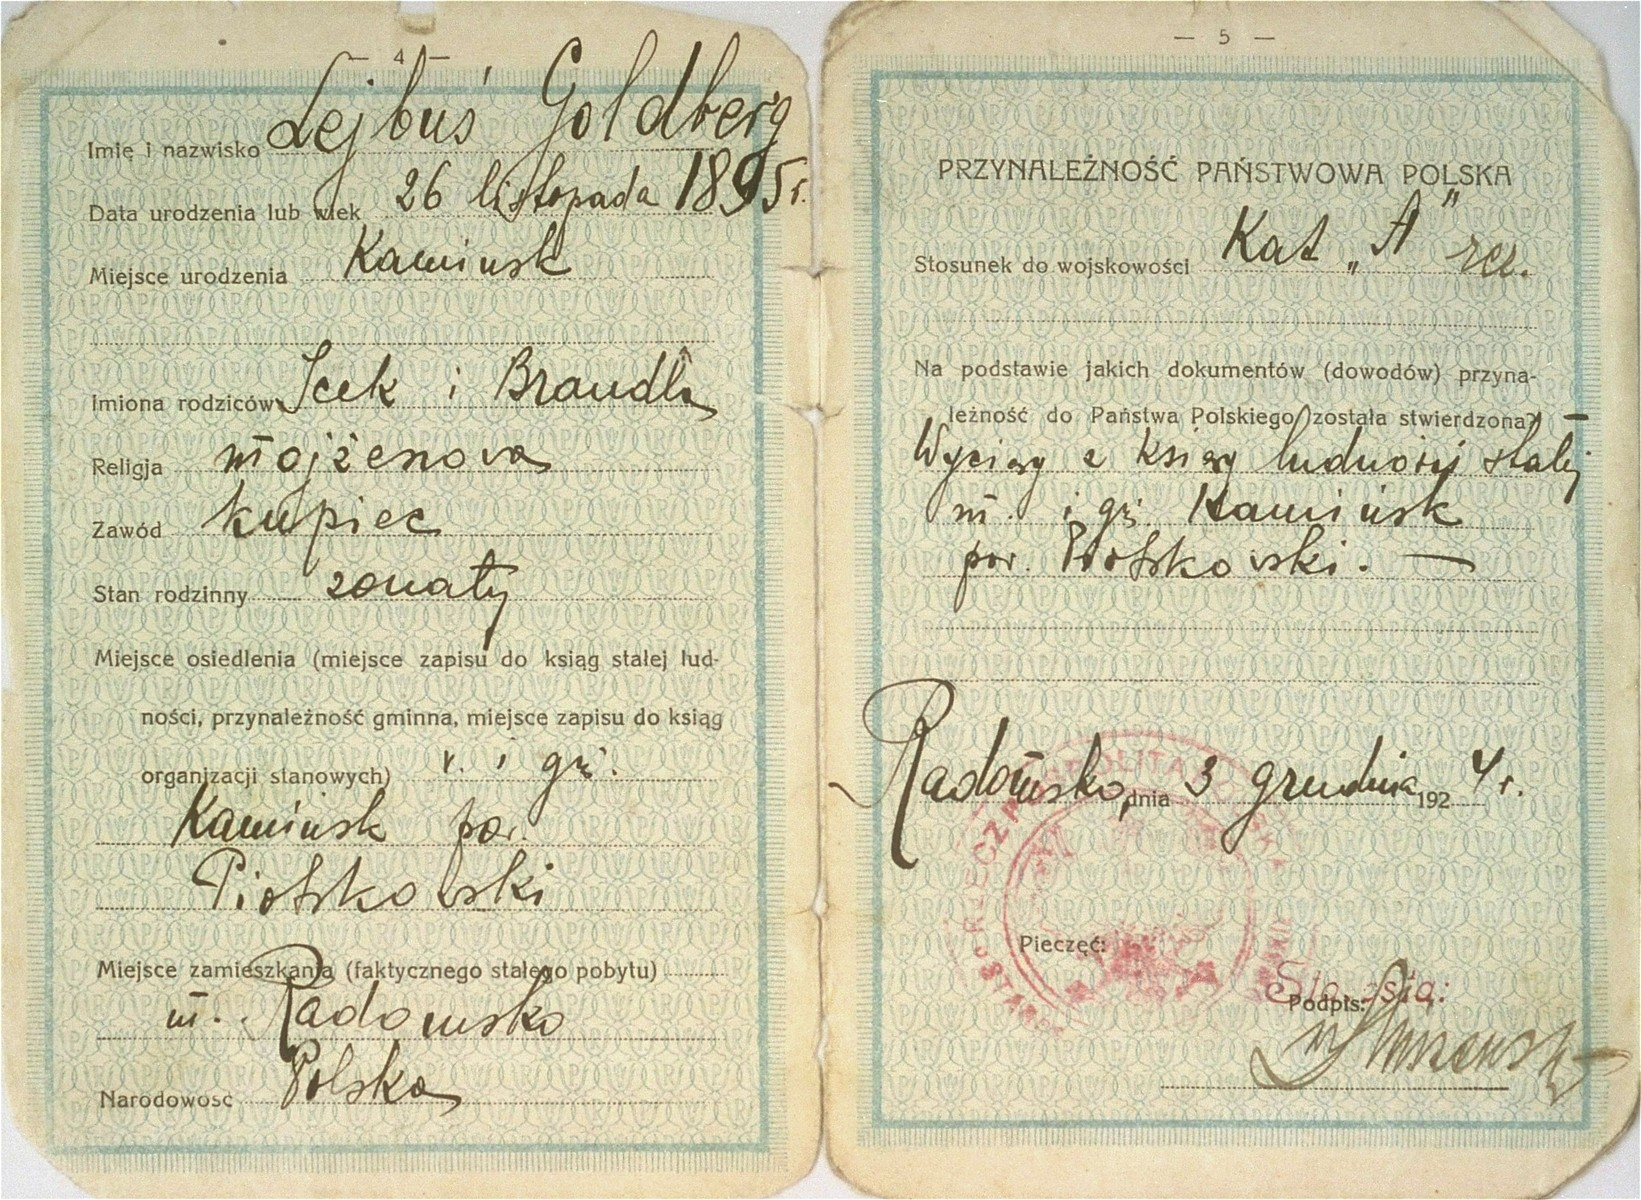 Discharge papers issued to Lejbus Goldberg upon his release from active military service.